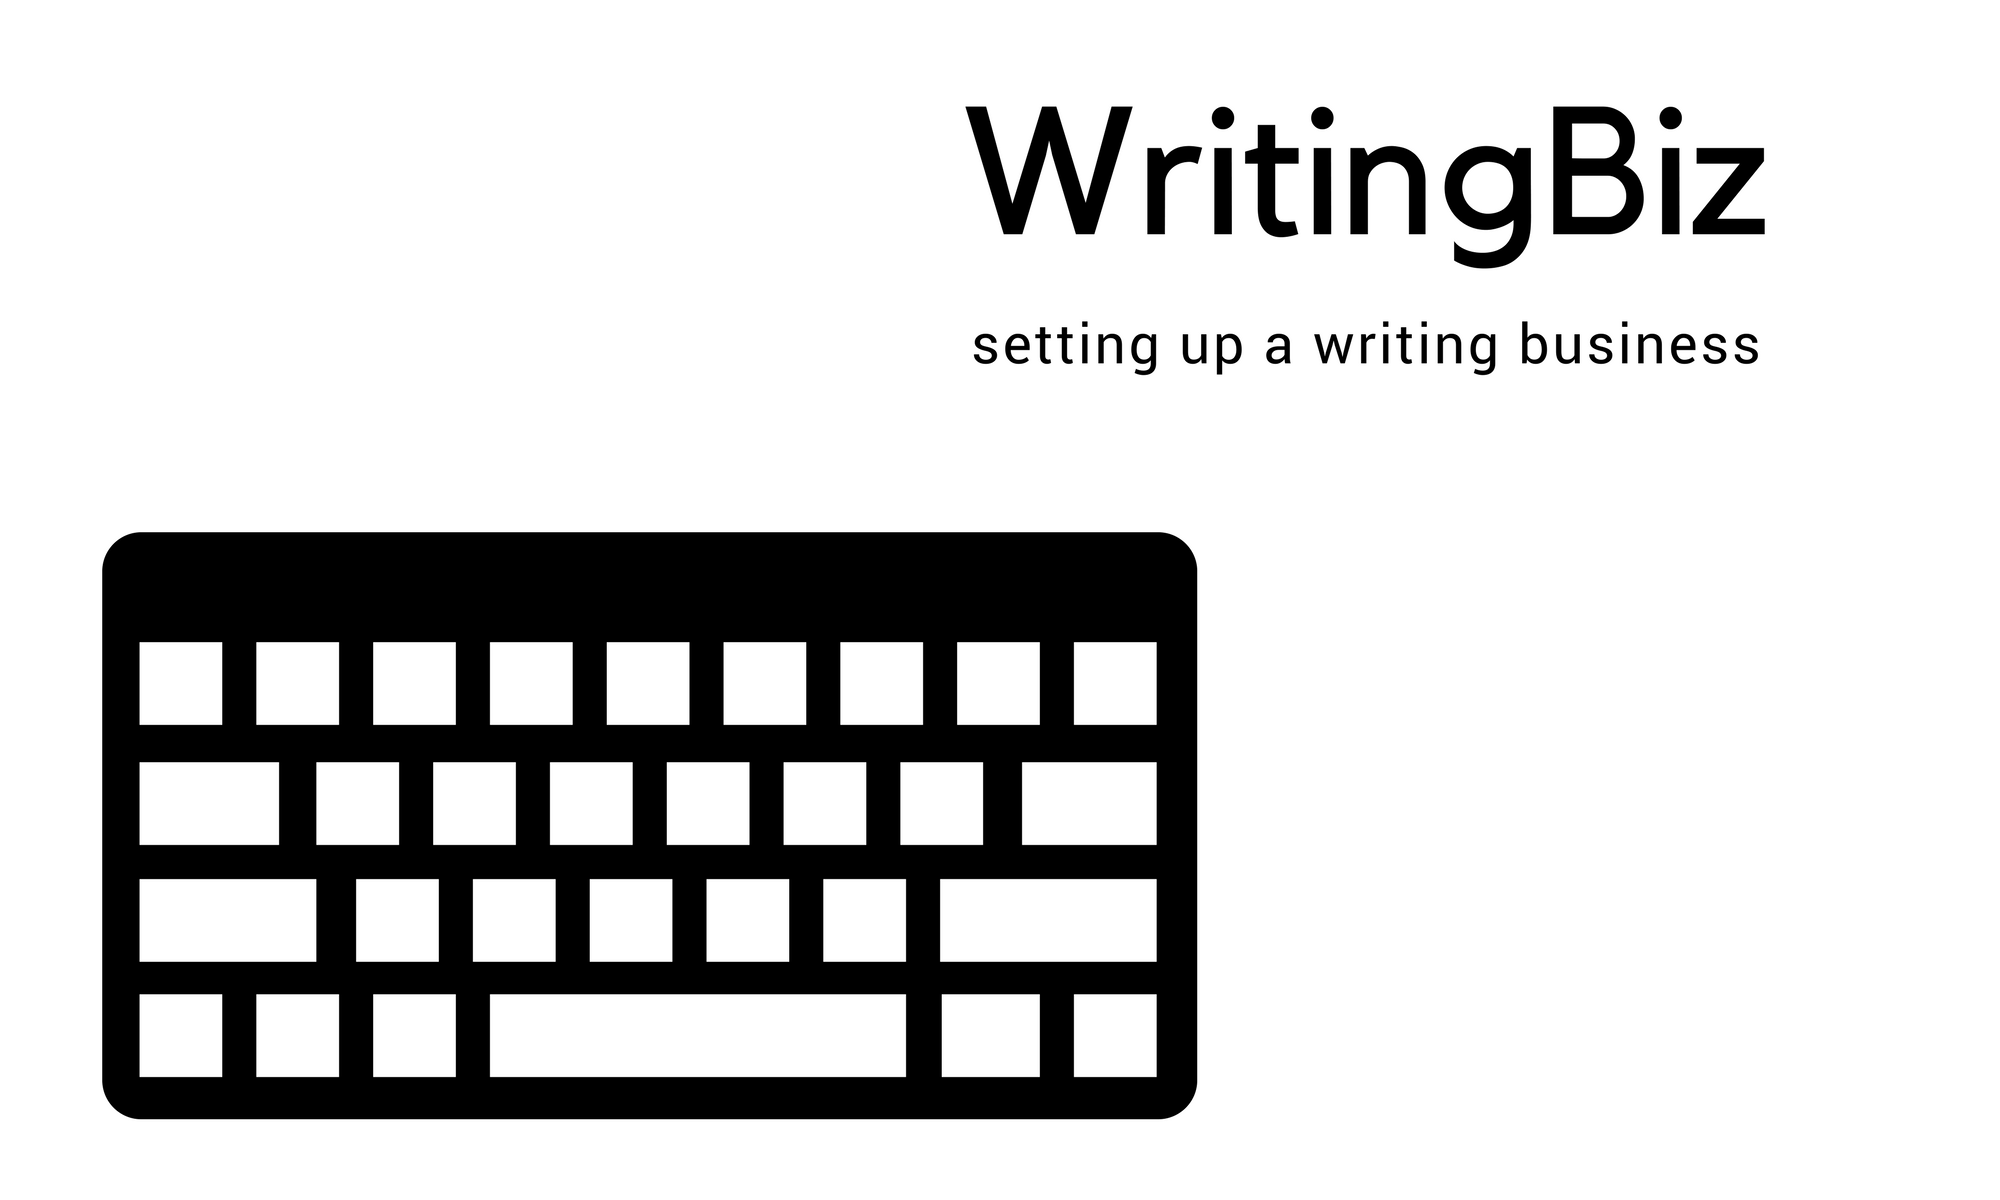 WritingBiz - Make money writing - setting up a writing business